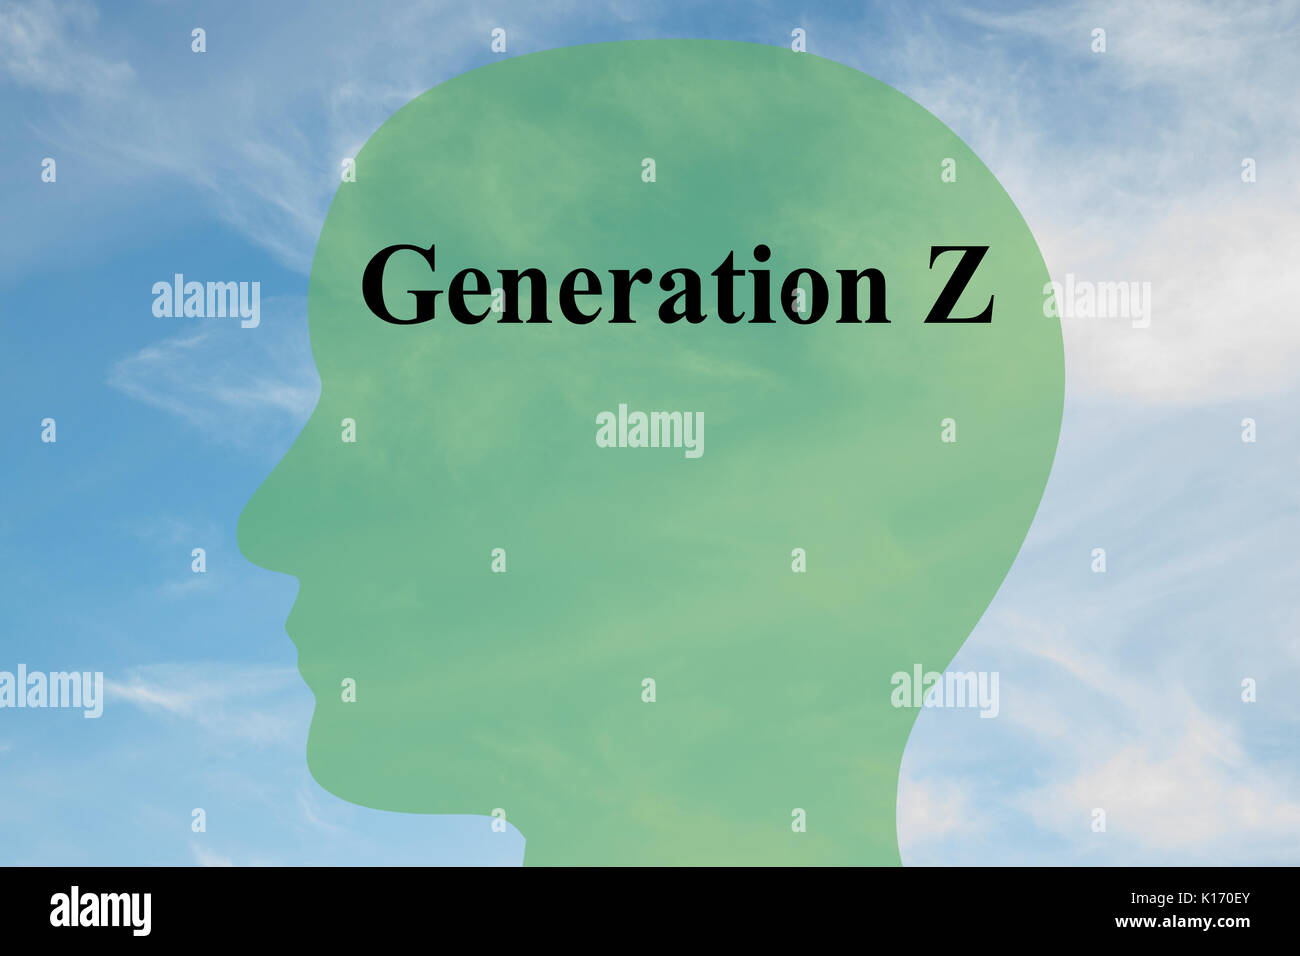 Render illustration of 'Generation Z' script on head silhouette, with cloudy sky as a background. - Stock Image